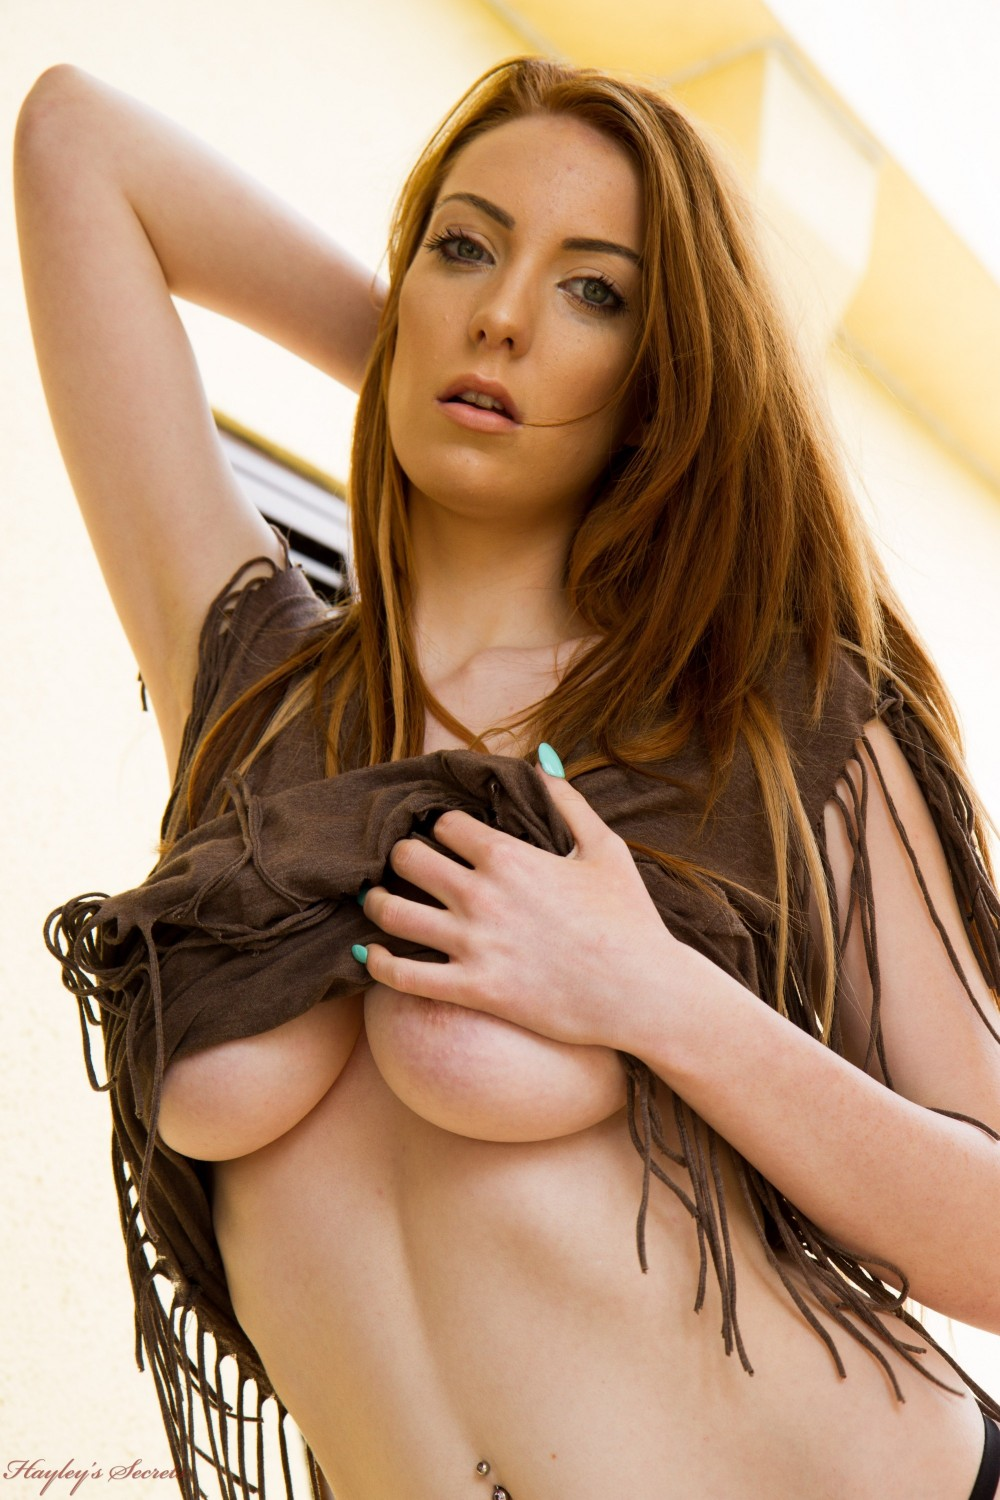 Alice brooks showing her big natural boobs